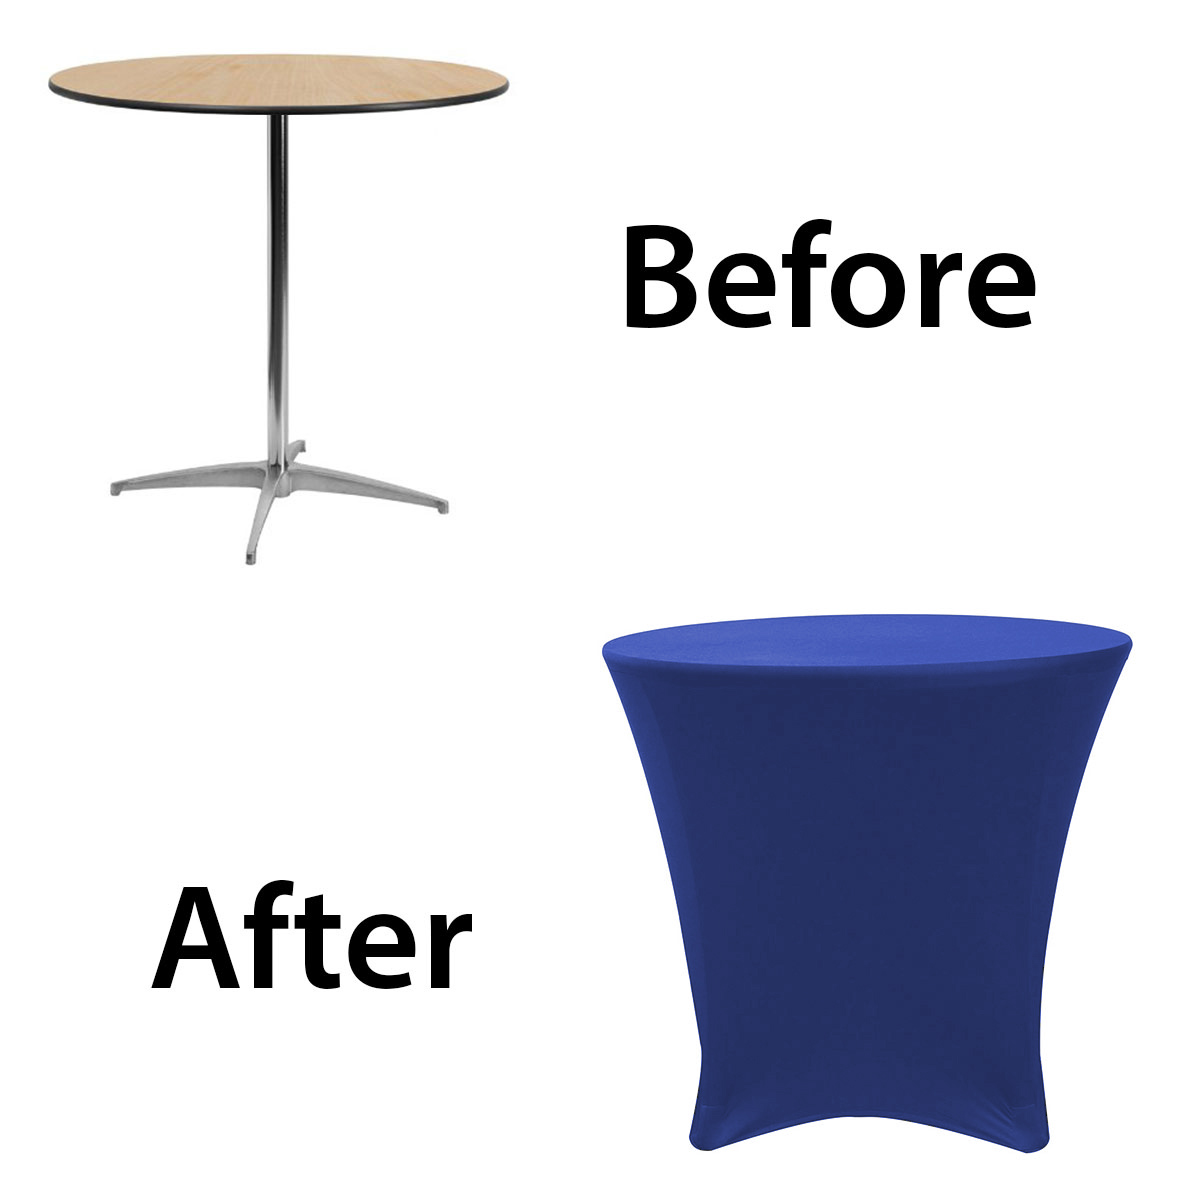 30-30-inch-lowboy-cocktail-spandex-table-covers-royal-before-after.jpg